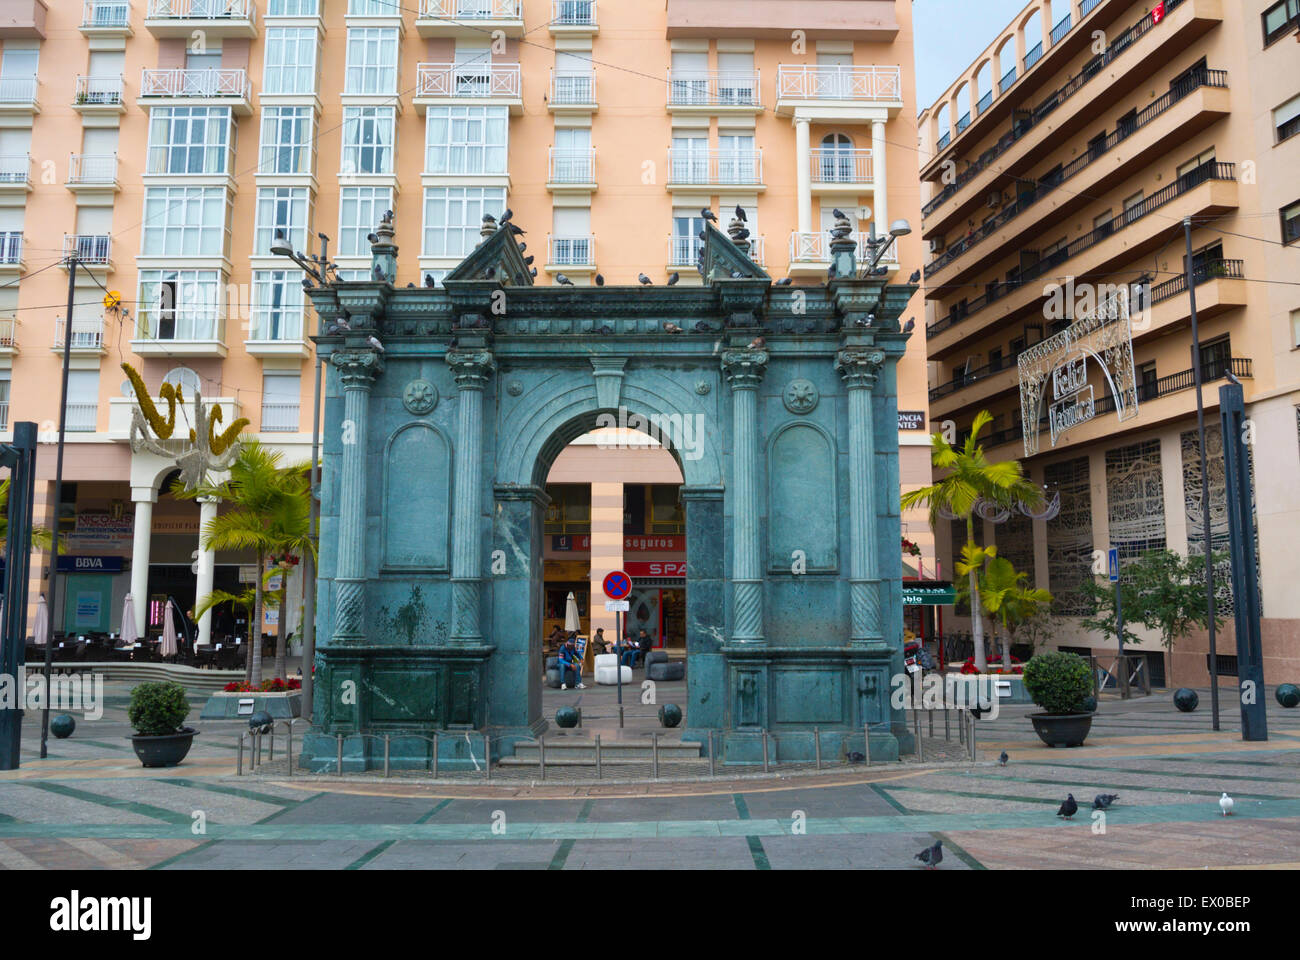 Triumphal arch, Plaza de los Reyes, main square, Ceuta, Spanish enclave inside Morocco, northern Africa - Stock Image